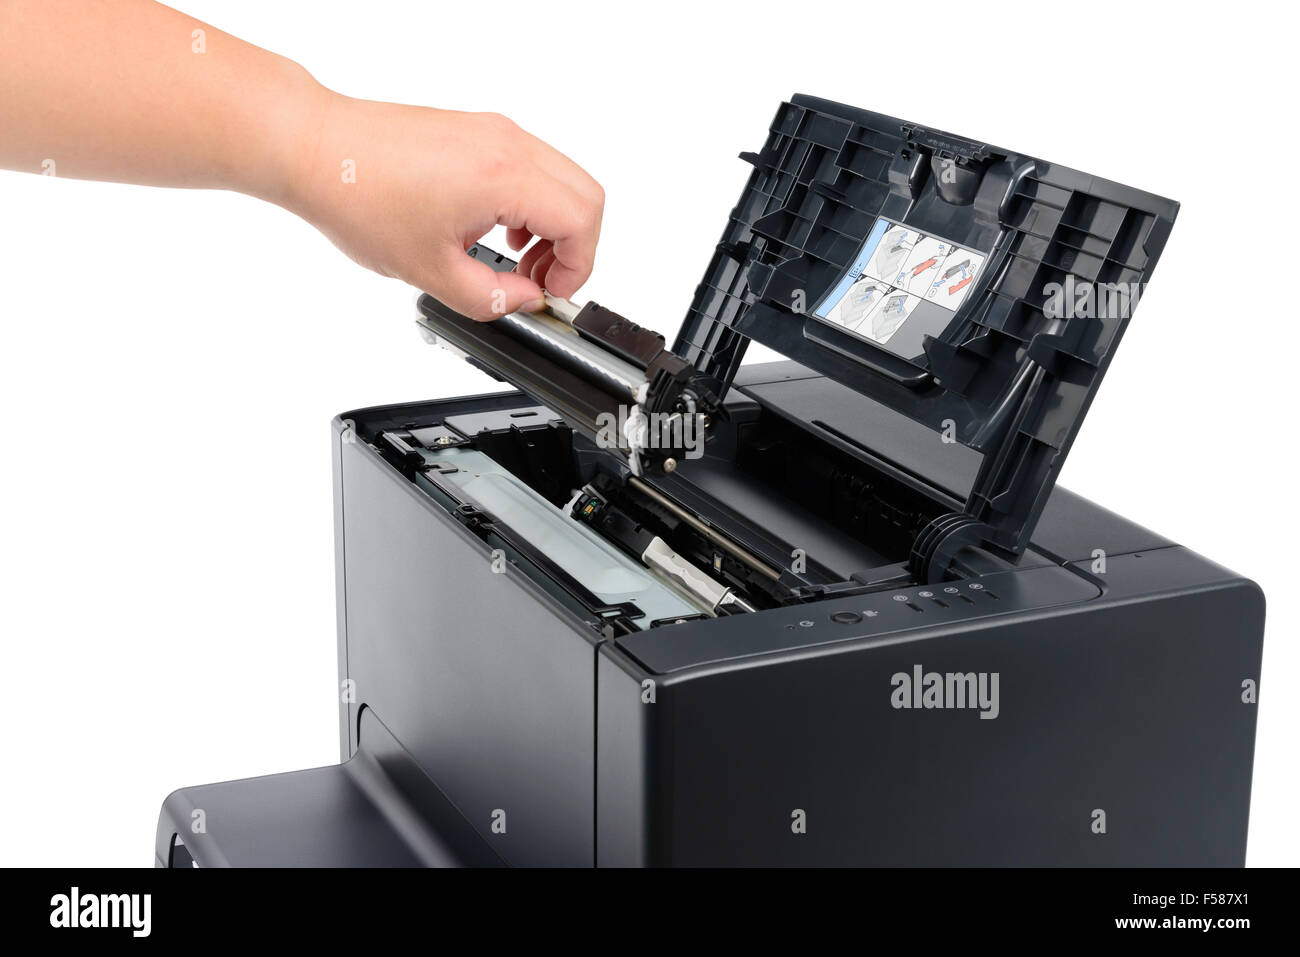 replace black toner cartridge in a laser printer, isolated on white - Stock Image